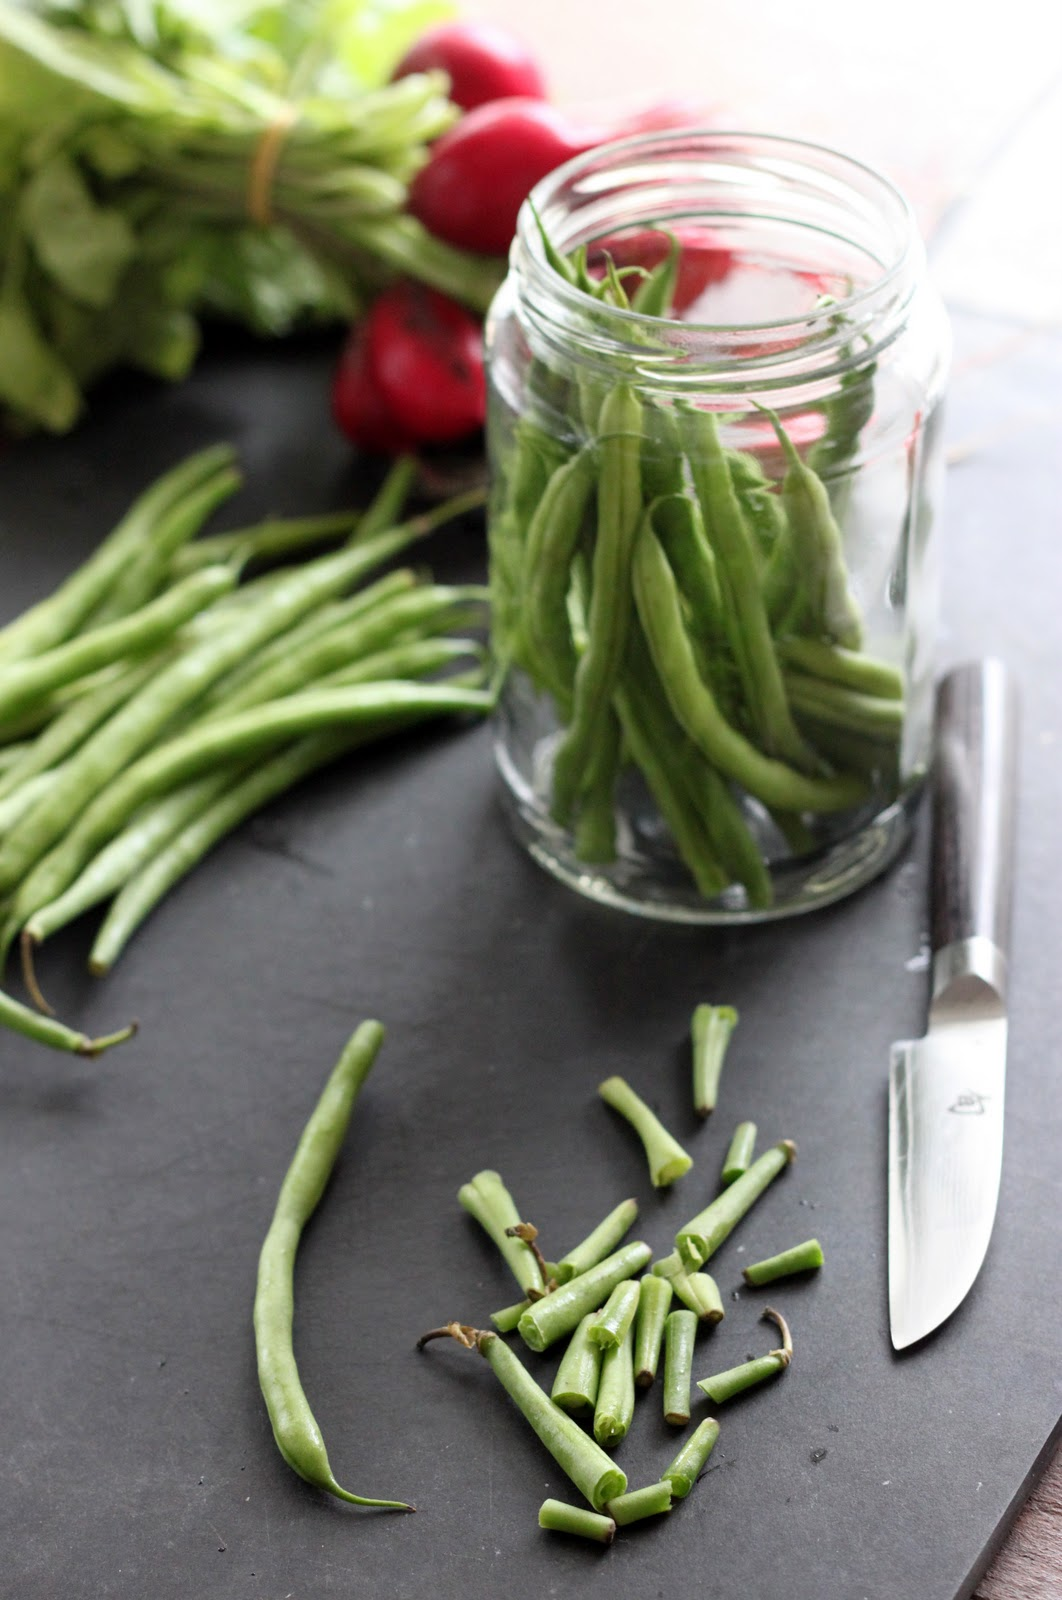 Pickled green beans recipe easy